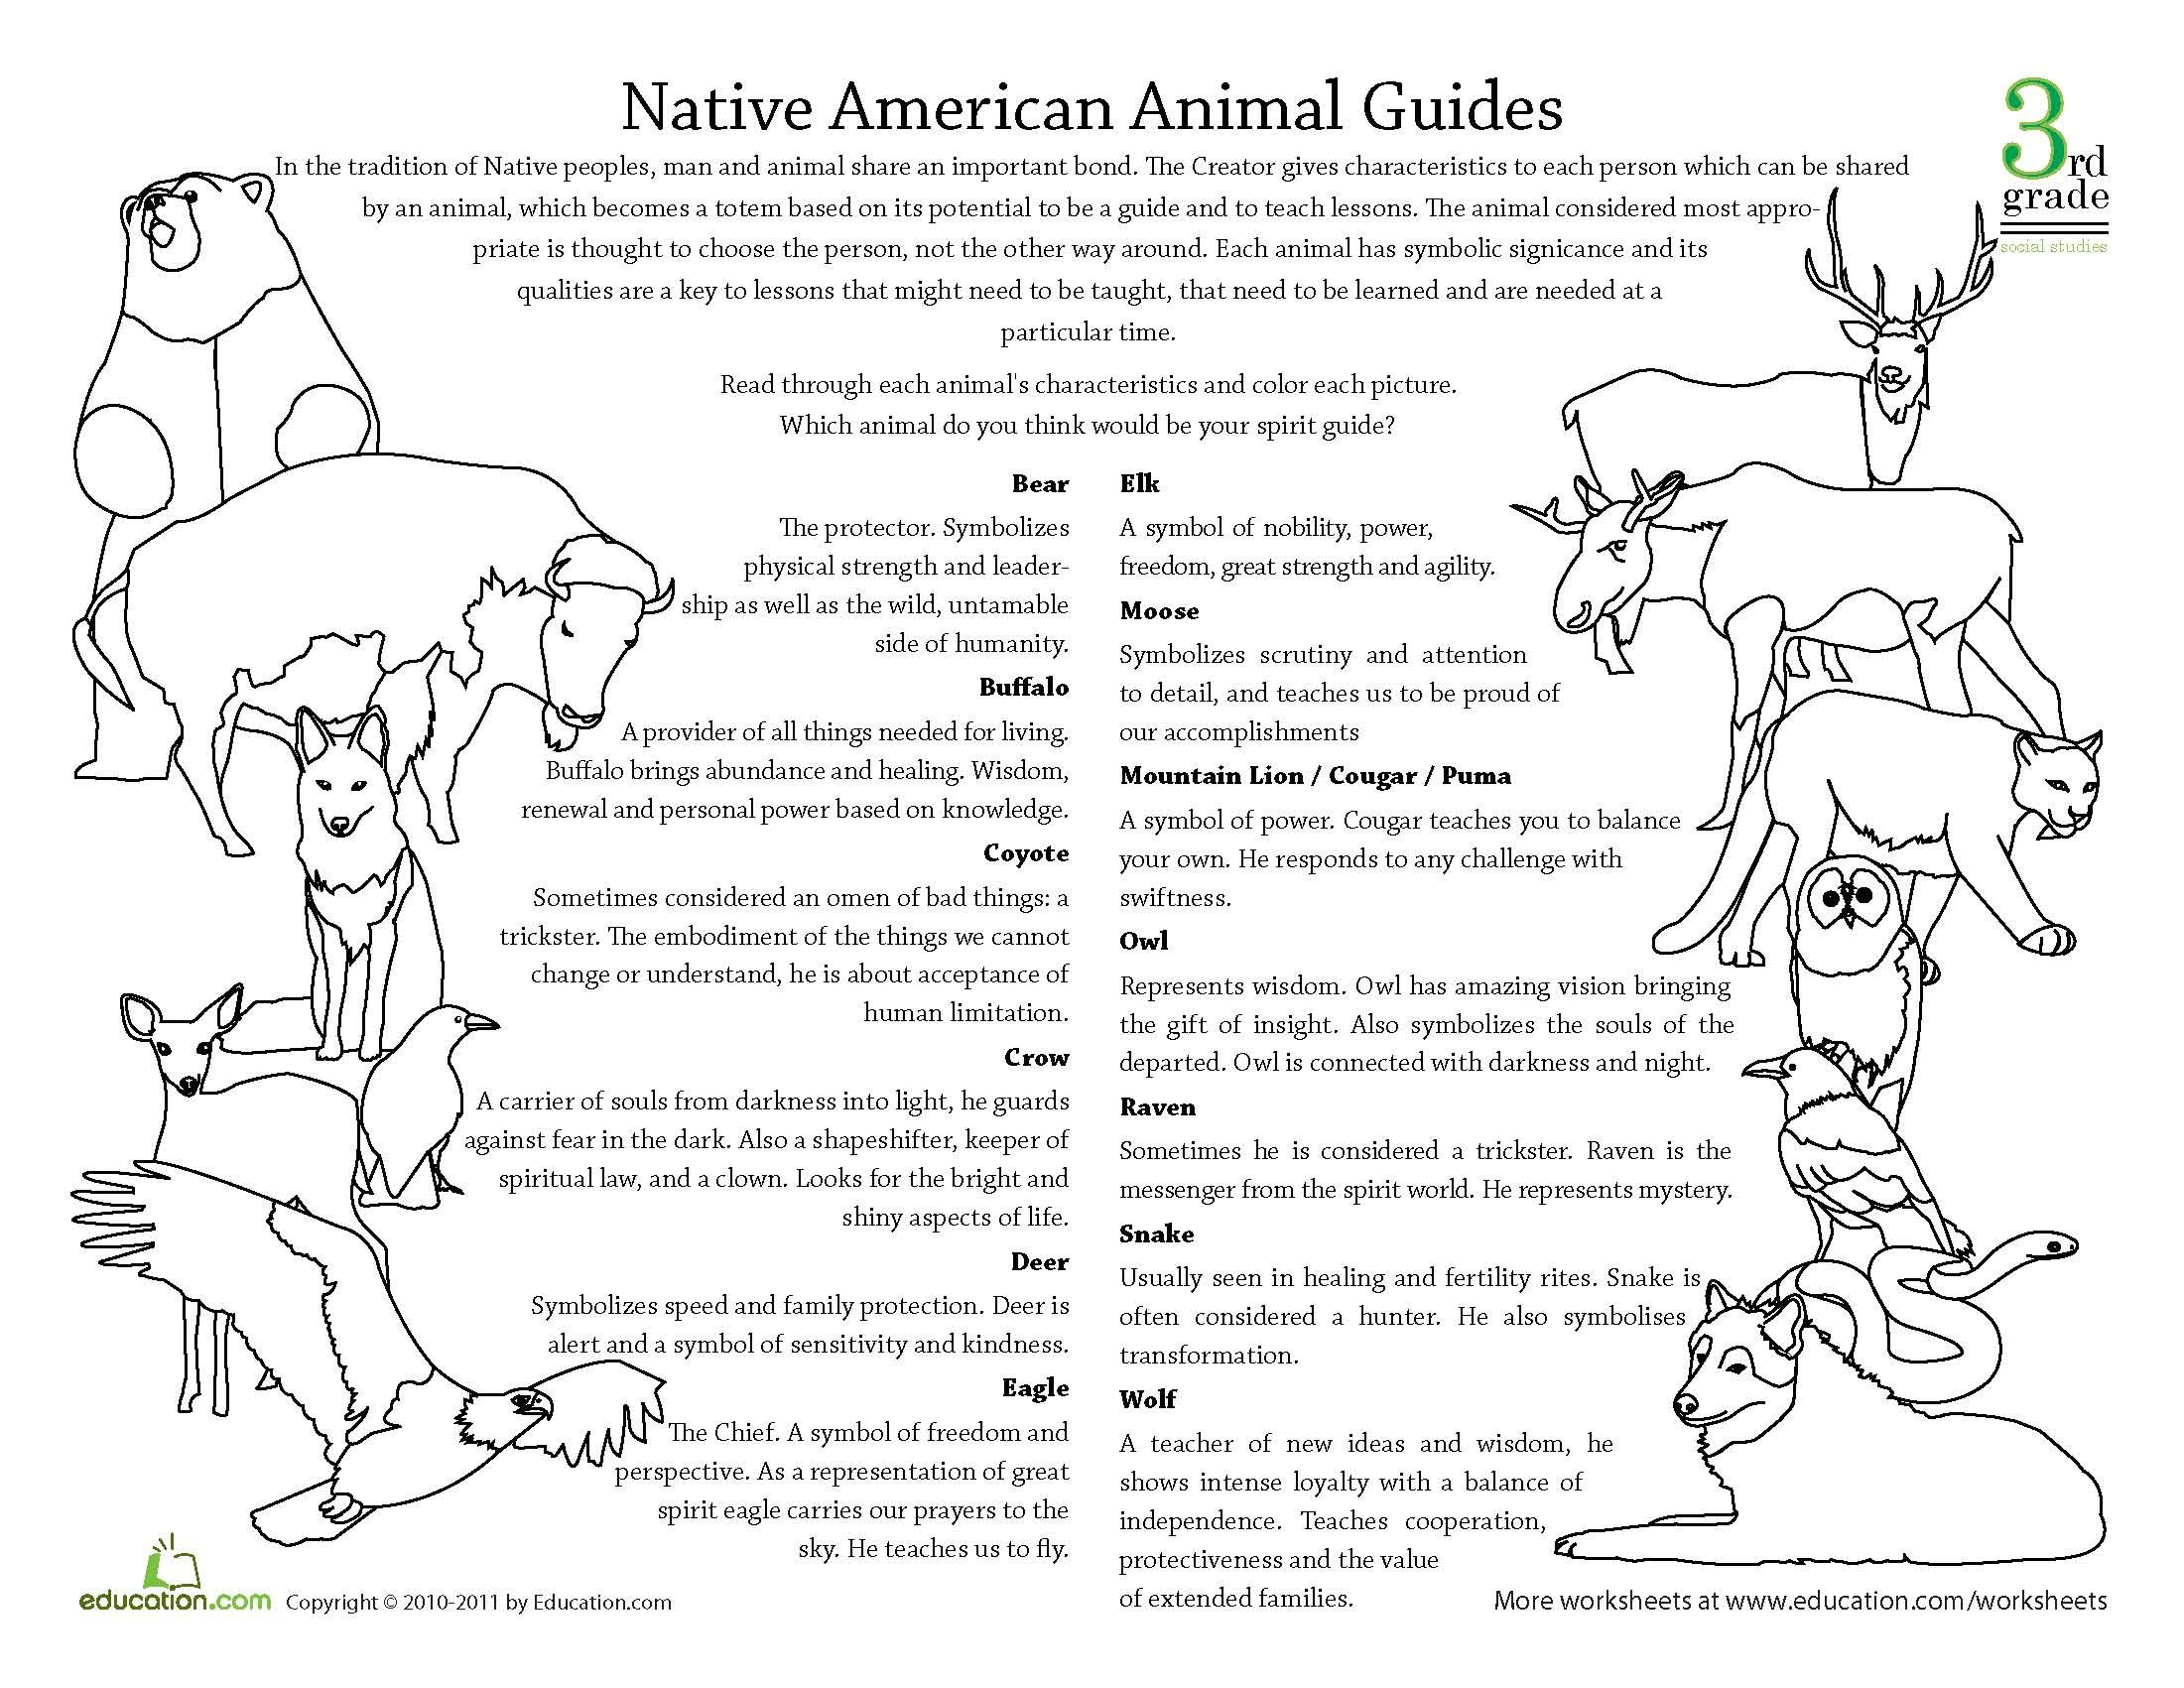 small resolution of http://api.ning.com/files/7U-JG7rftqSKt-SB74-Nd2vcbytwDfleeO0exFJo1gYdvK0GUwm5e-eLoRXMo…    Native american animals